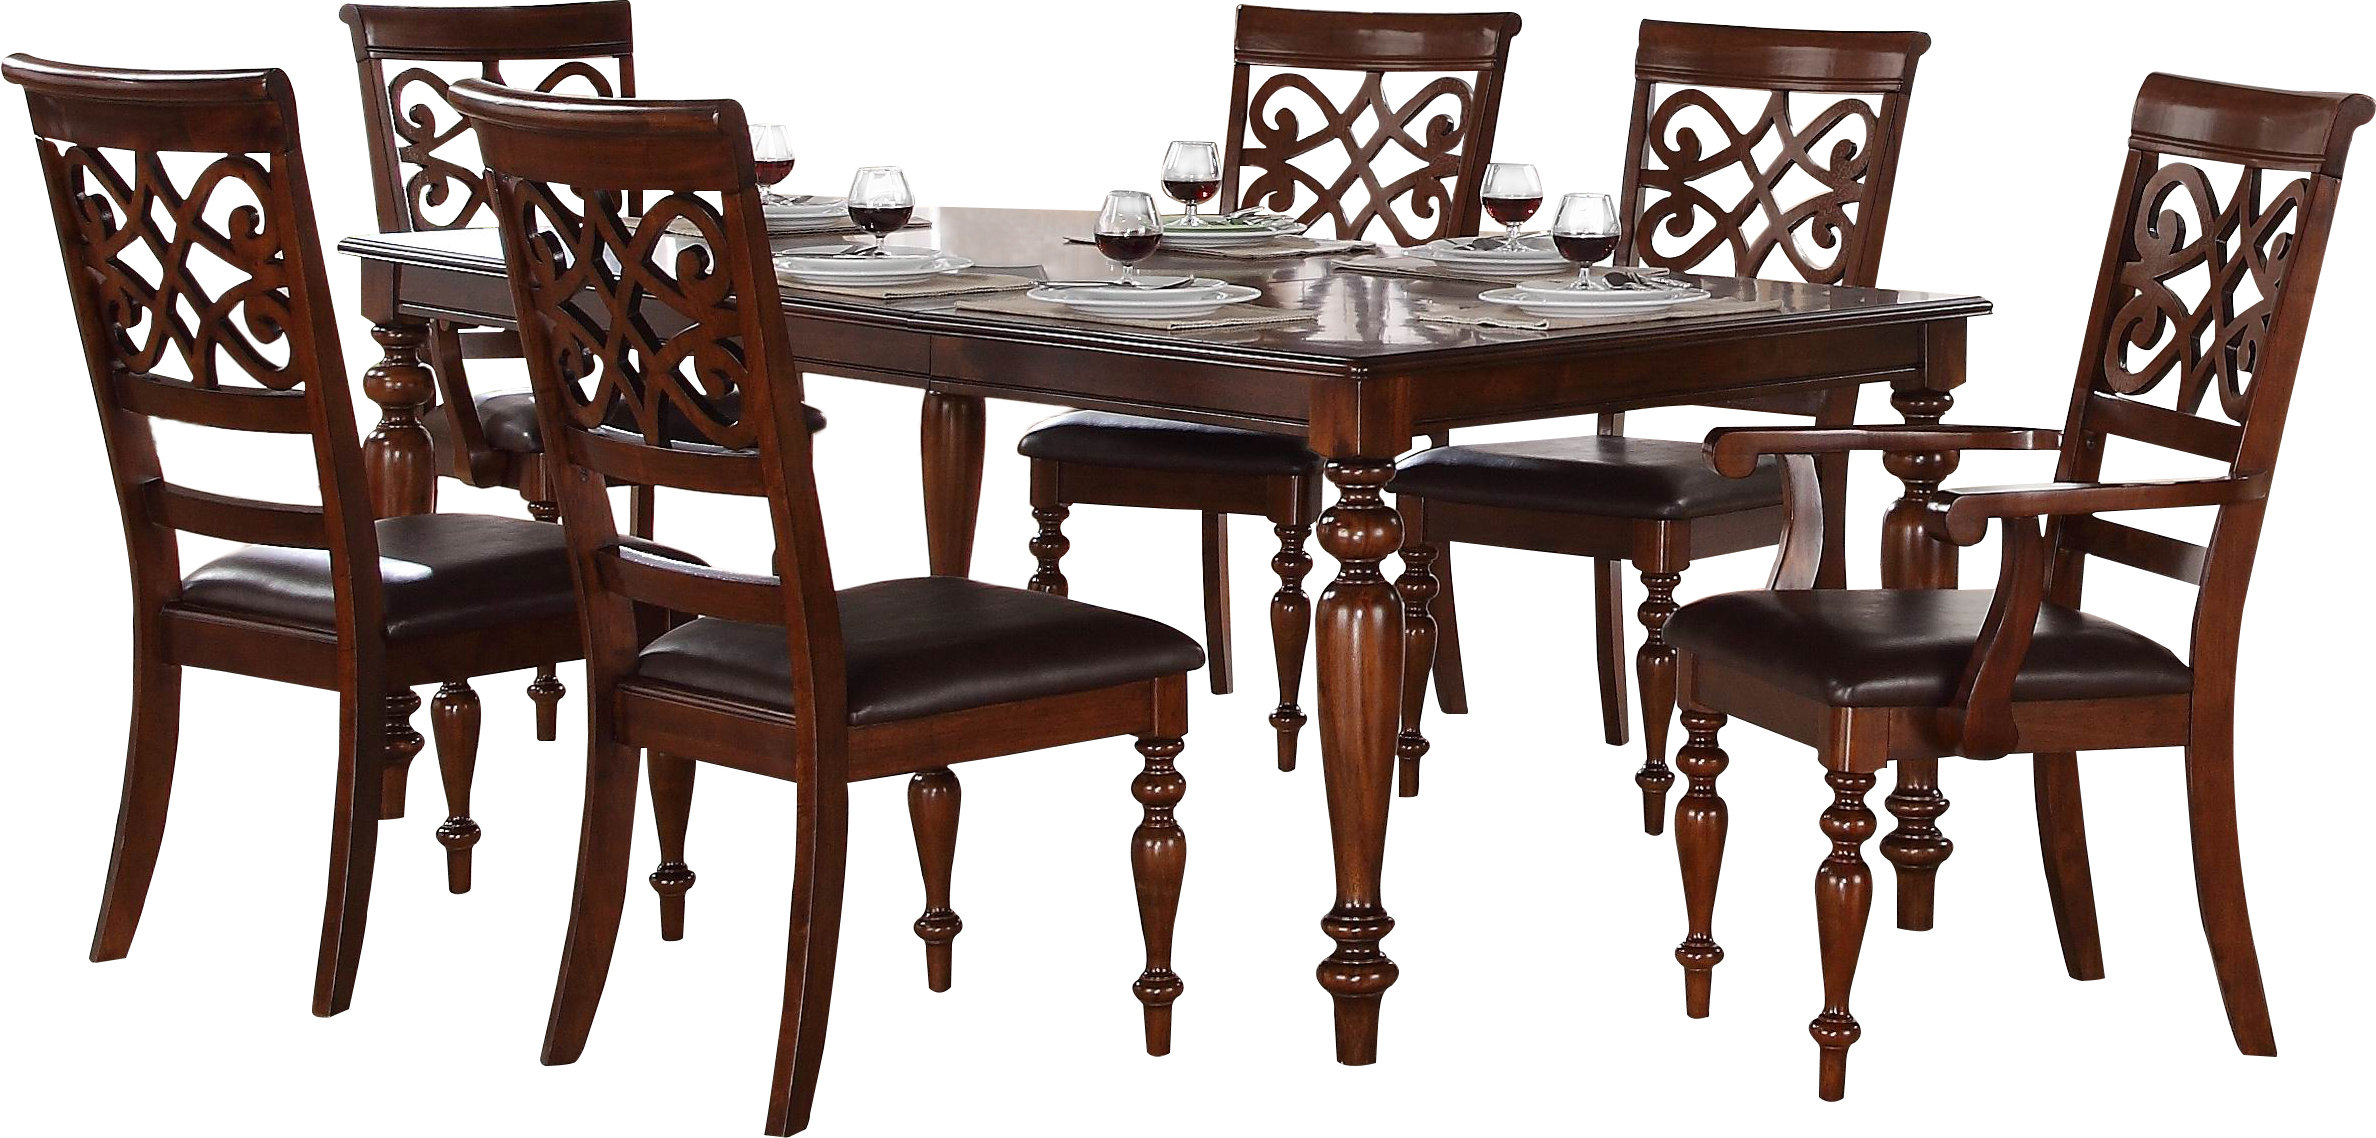 Leith 7 Piece Dining Set With Most Recent Laconia 7 Pieces Solid Wood Dining Sets (Set Of 7) (Photo 14 of 20)